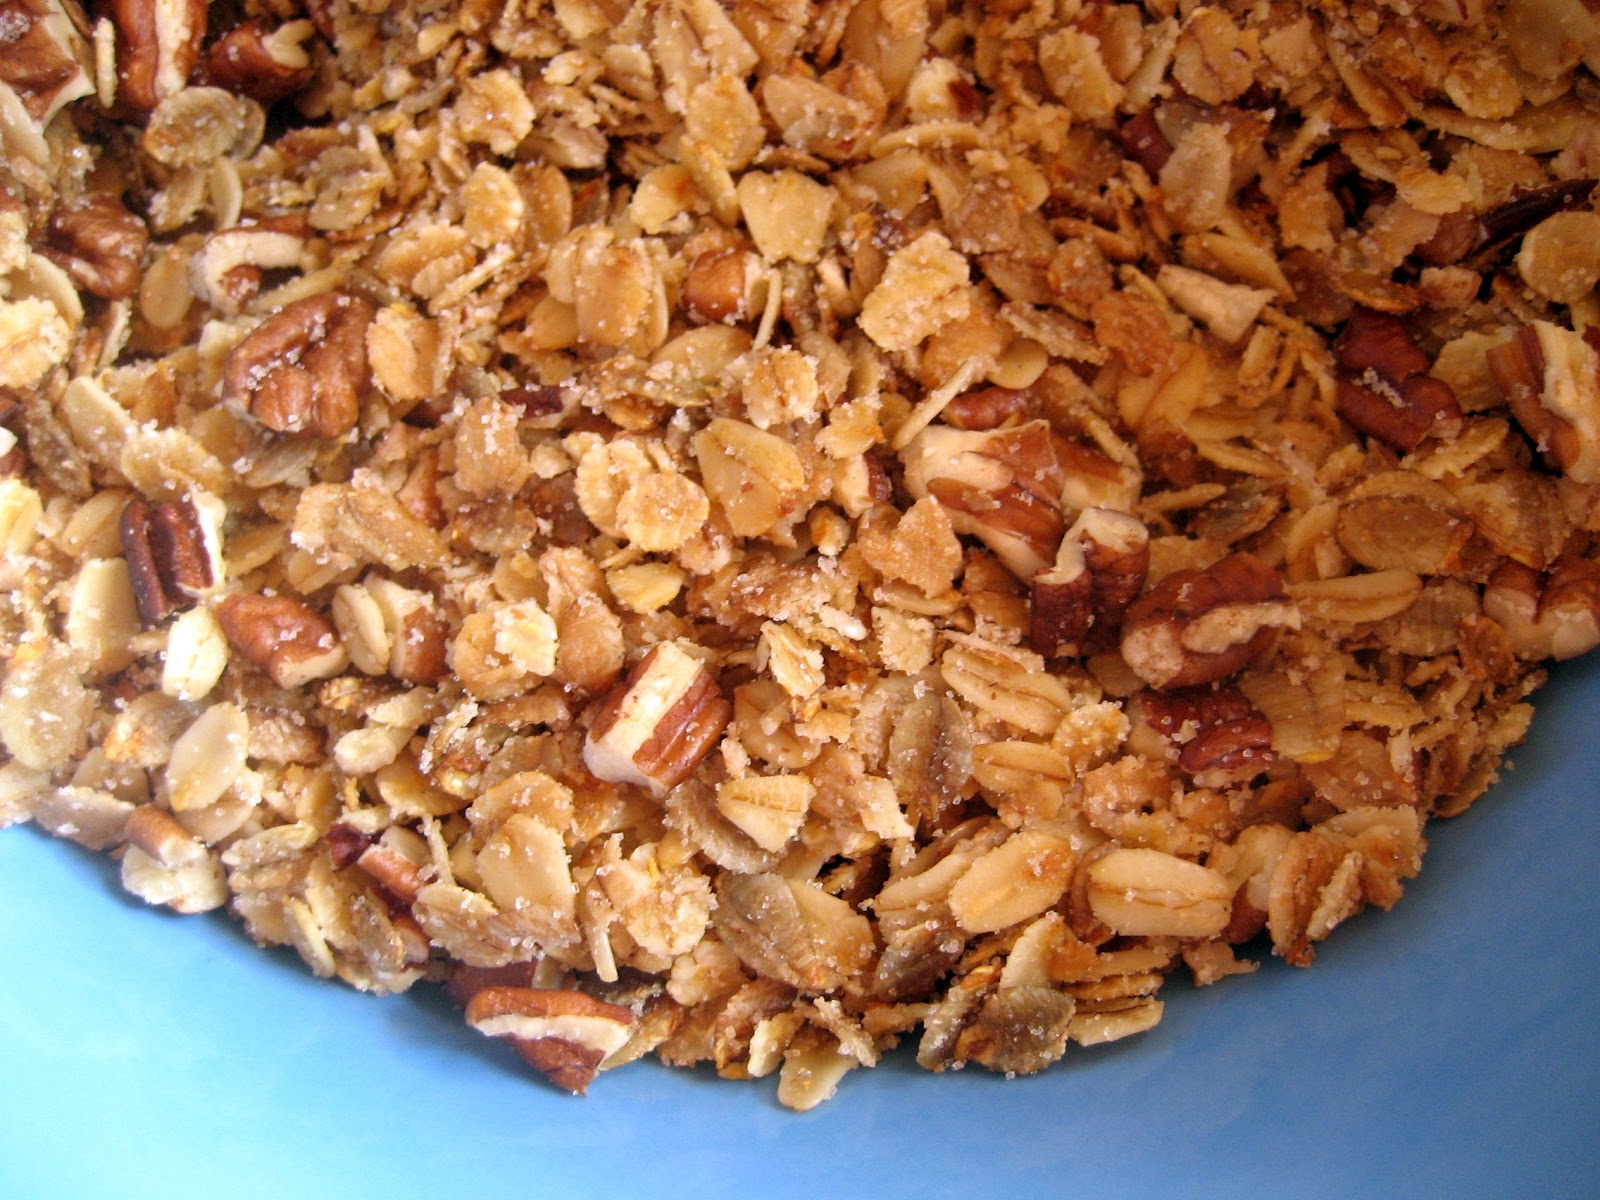 ... Book, Chapter 4: Four-Grain Toasted Cereal with Bananas and Pecans